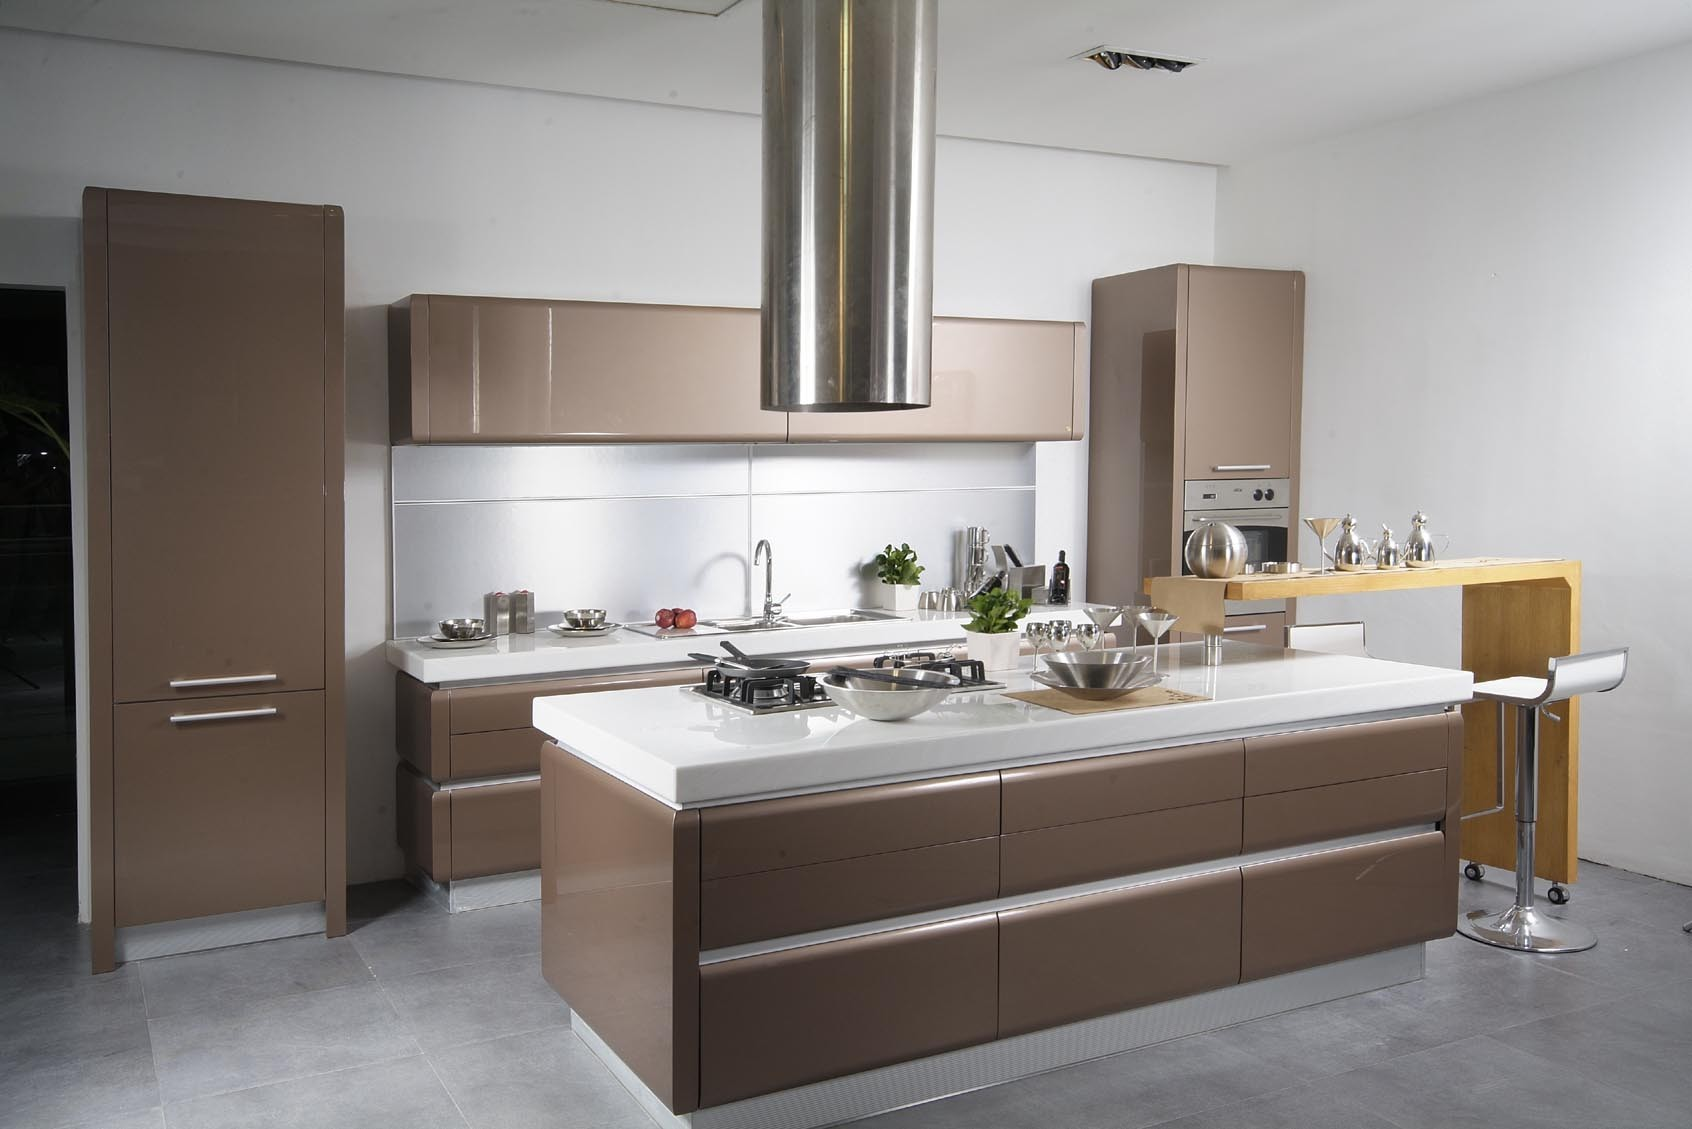 modern-kitchen-with-artistic-color-368